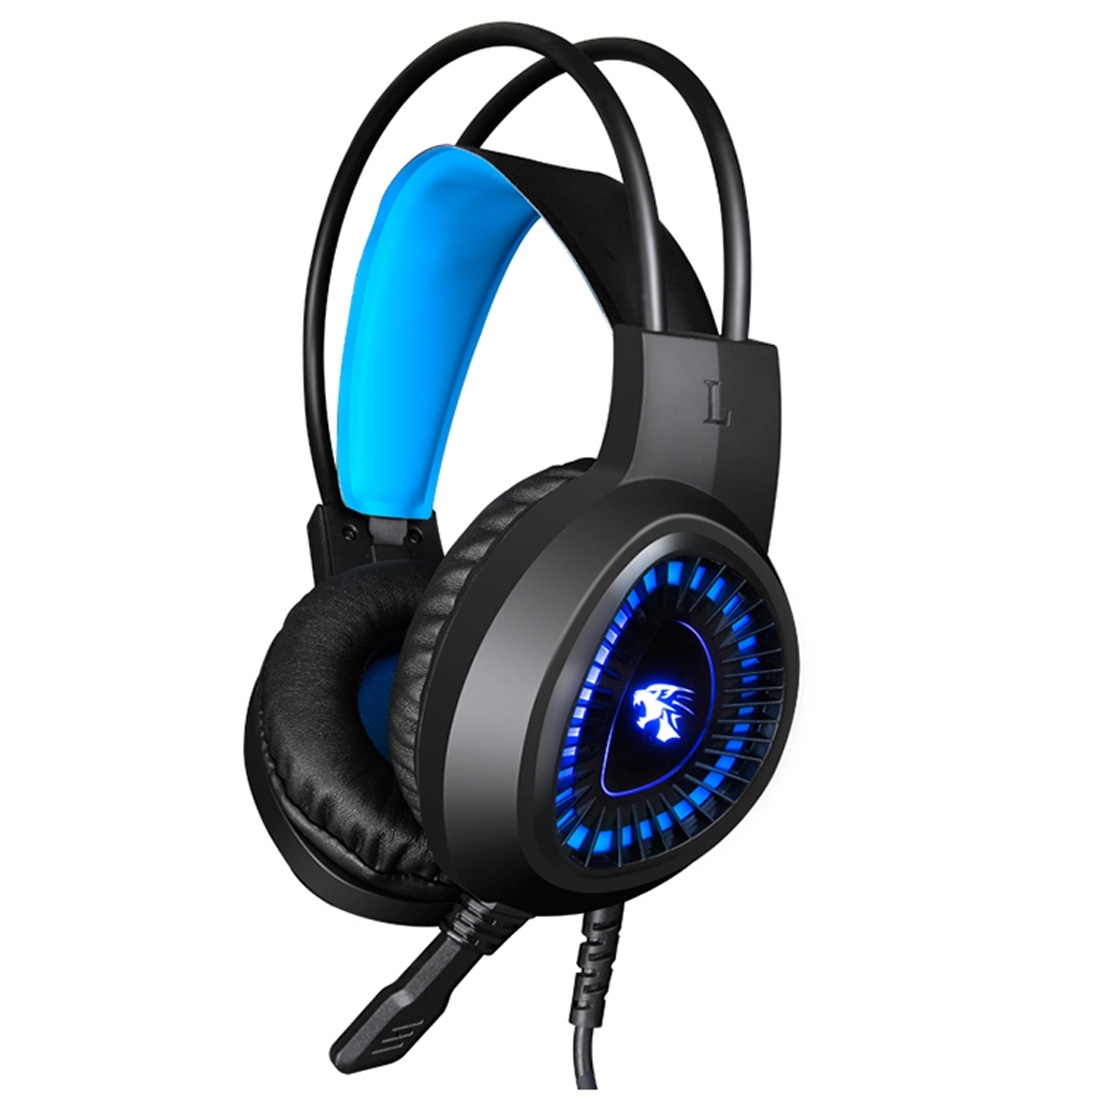 Ready Stock New Model HAMTOD <strong>V1000</strong> Dual-3.5mm Surround Gaming Headphone (Blue)